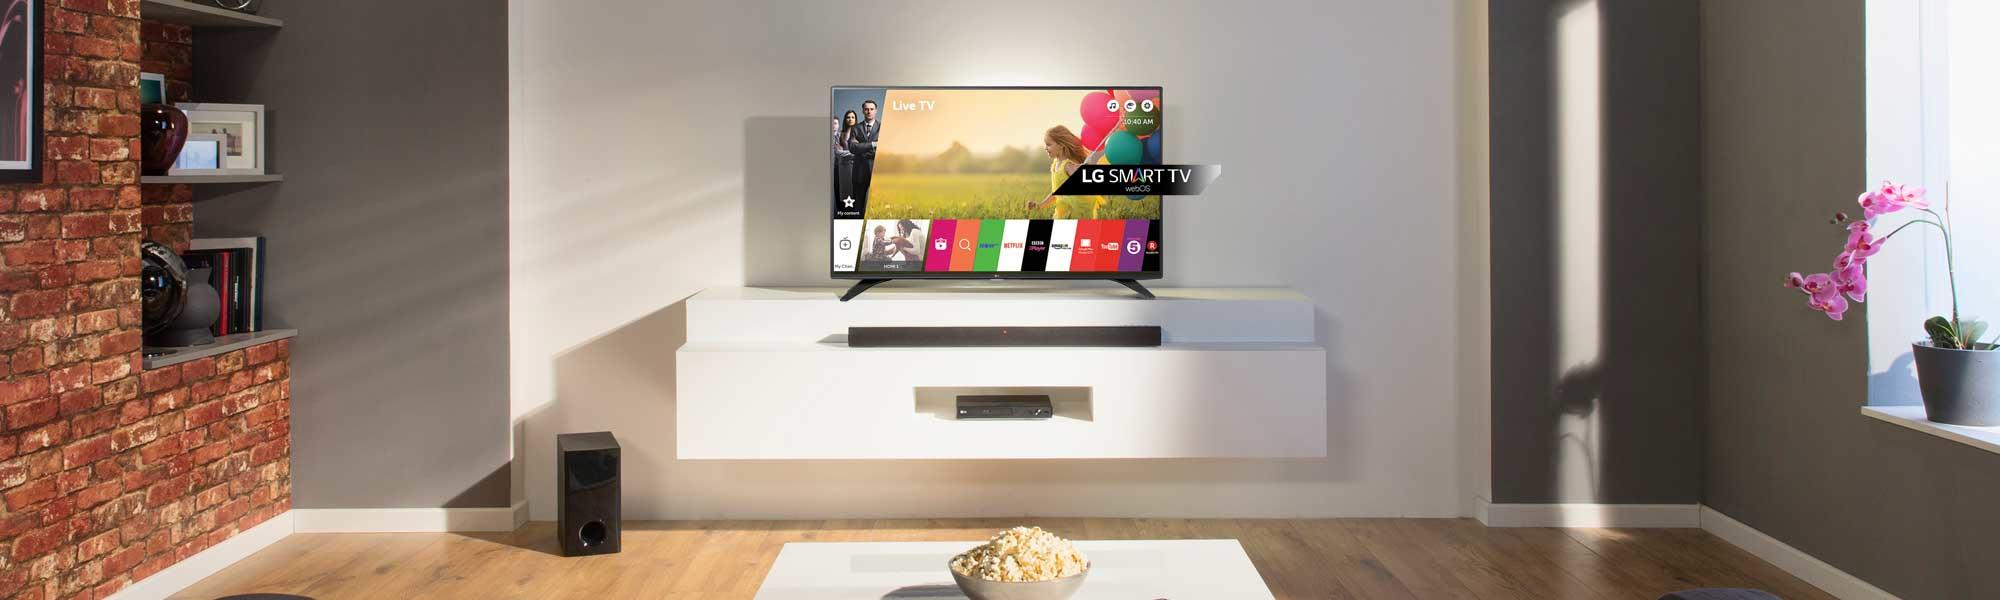 "LG 55LH604V 55"" Full HD LED Smart TV"